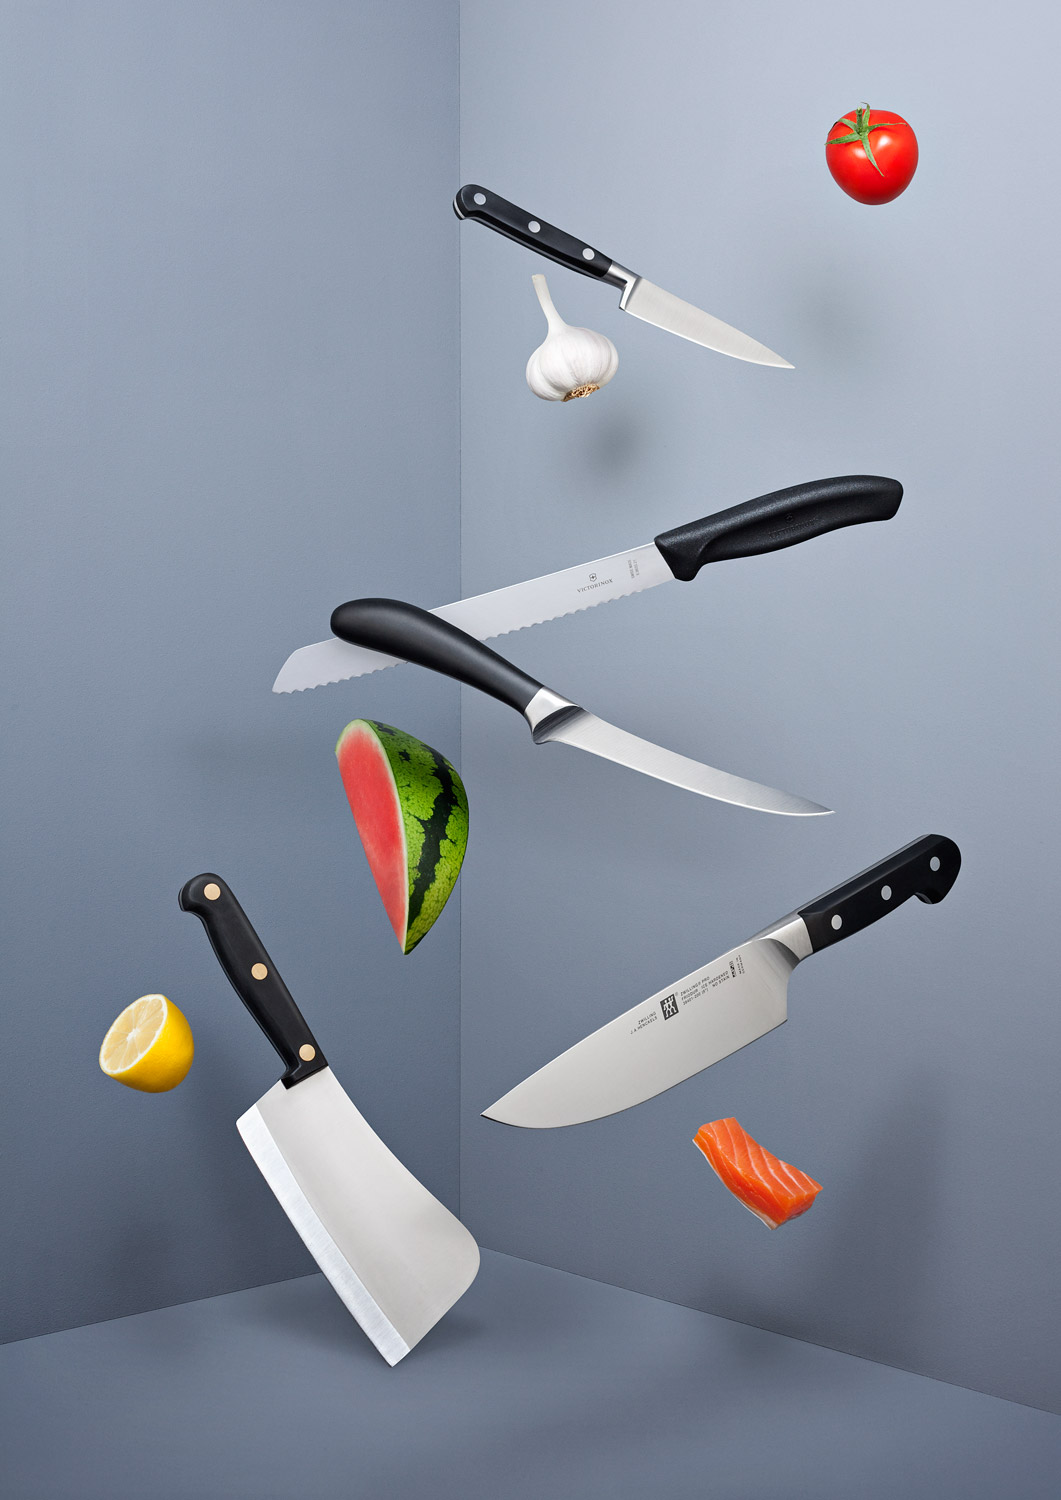 rvanderplank_jl_kitchenware-1-v1.jpg